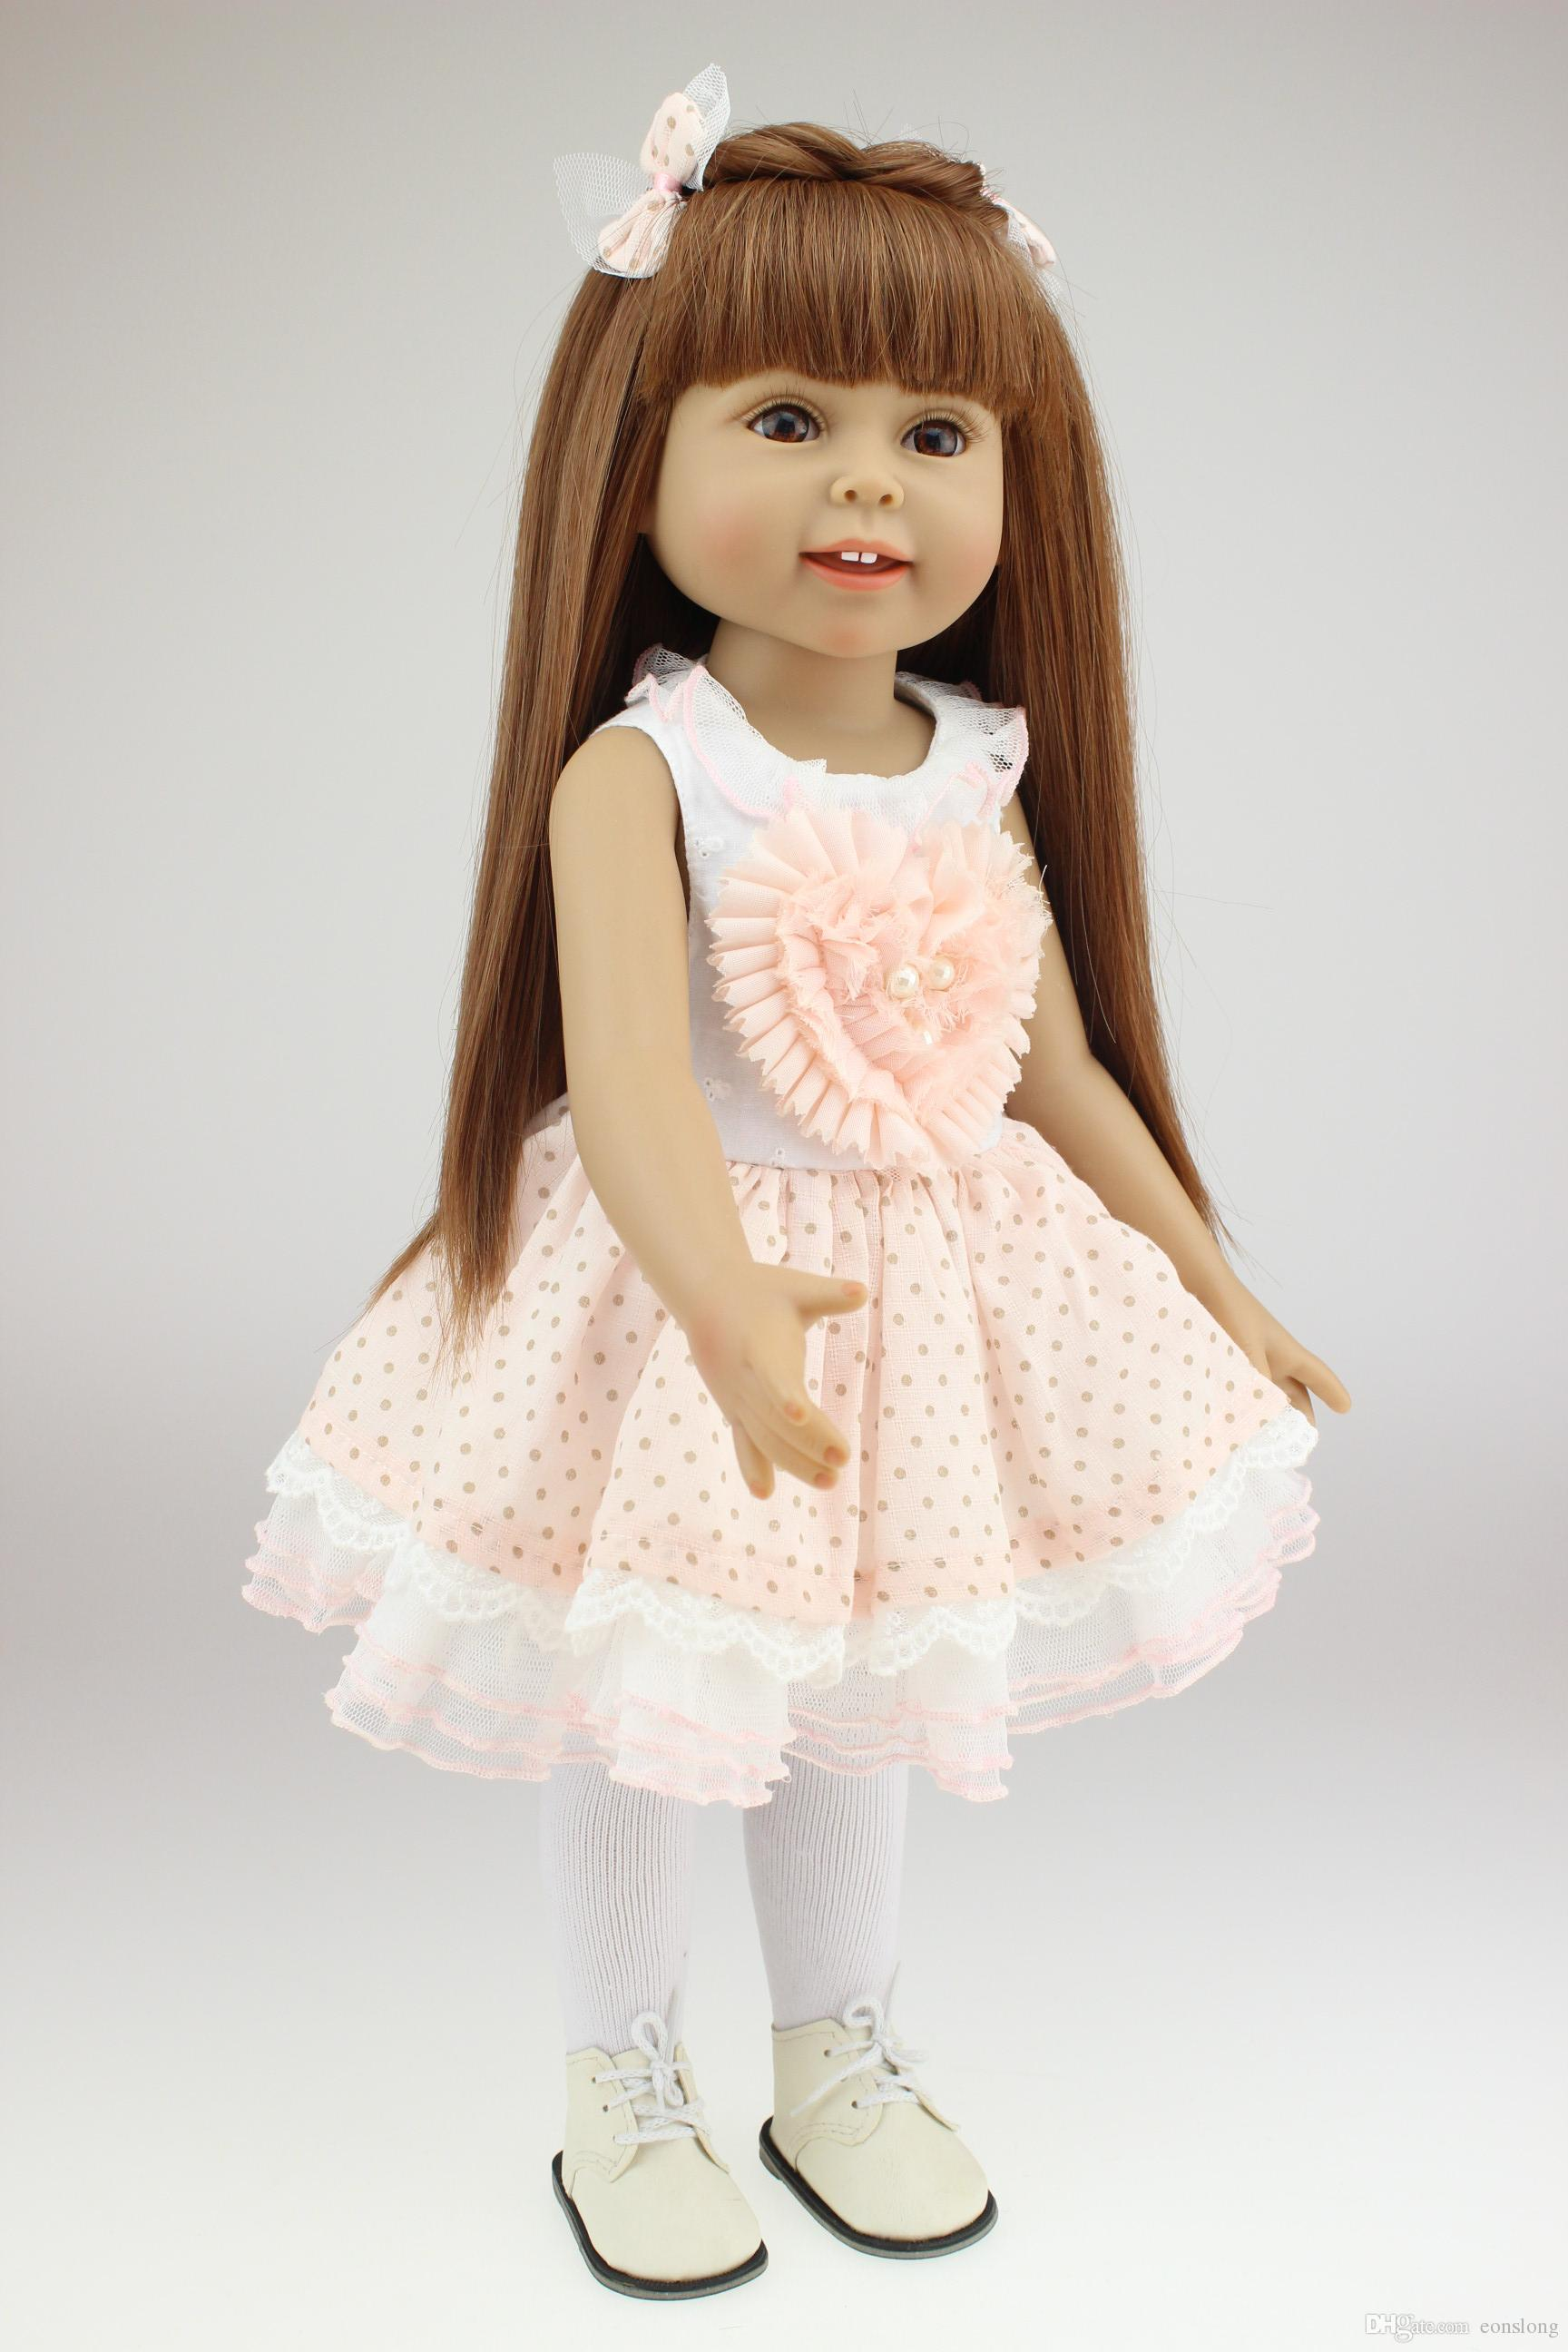 American Girl Doll Princess Doll 18 Inch/45cm,Soft Plastic Baby Doll Plaything Toys For Children